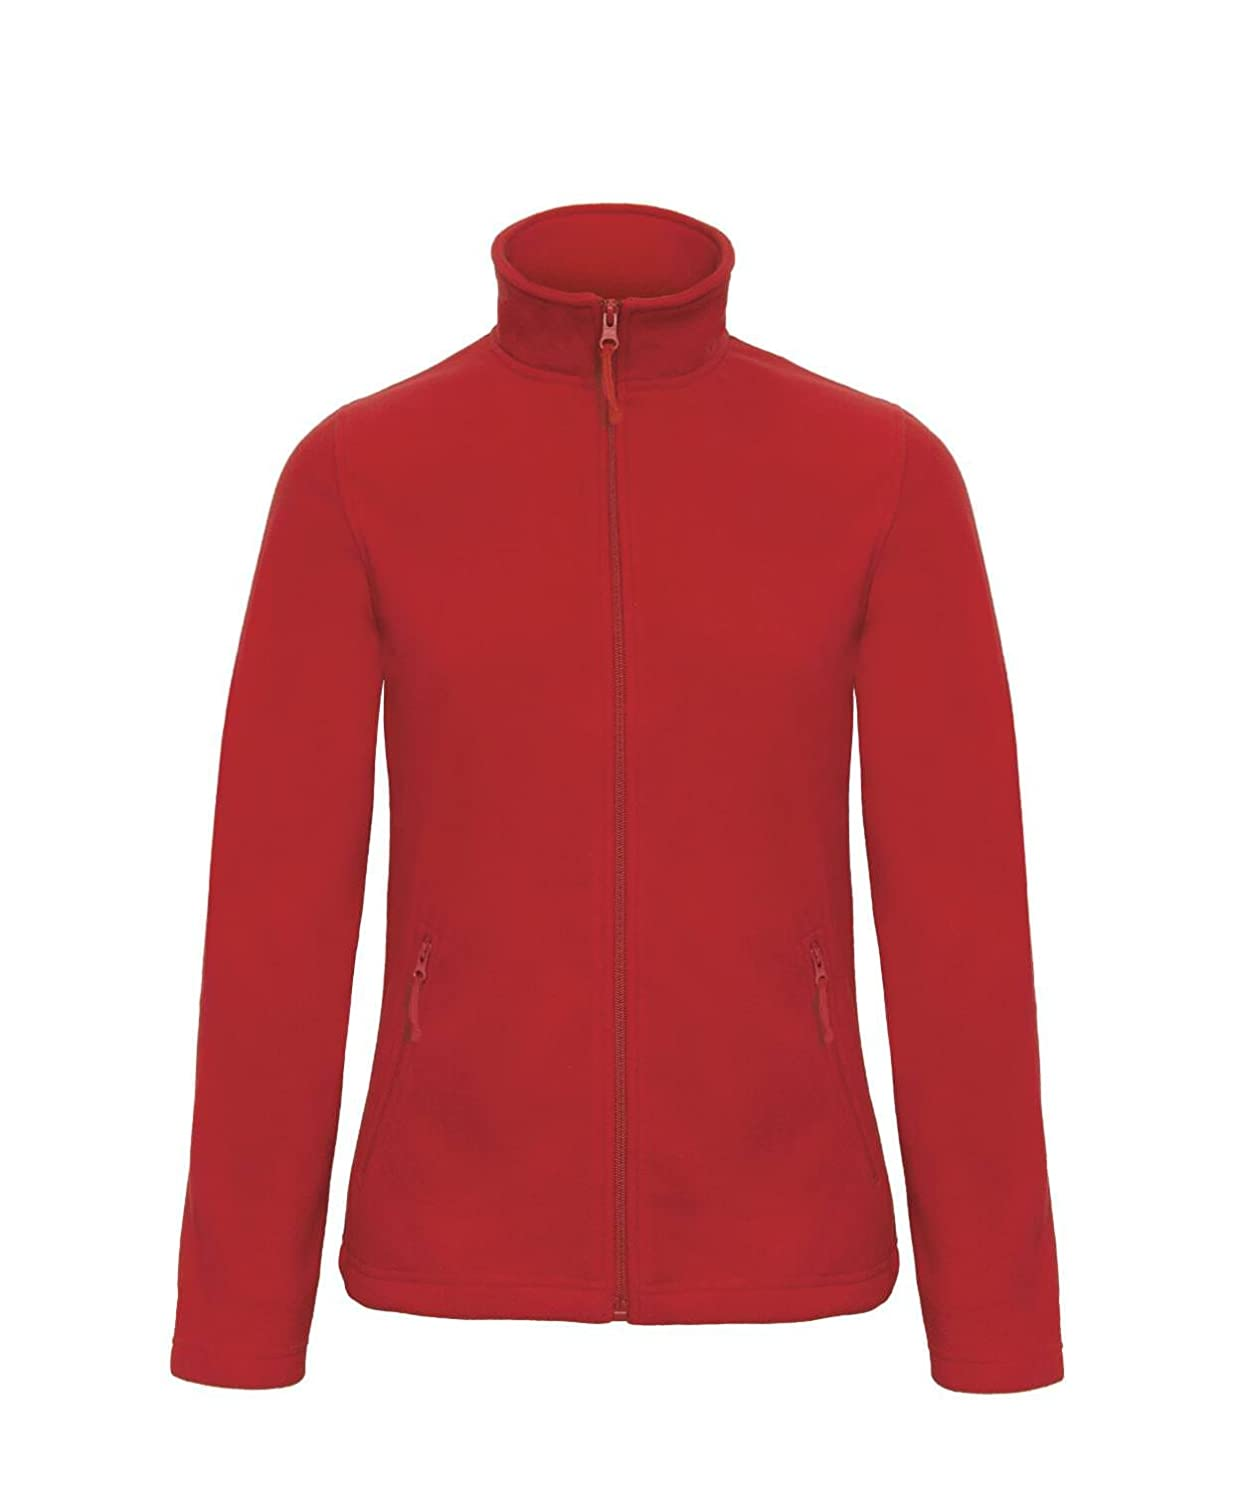 B&C Collection Women's Full Zip Microfleece - 10 Colours Available